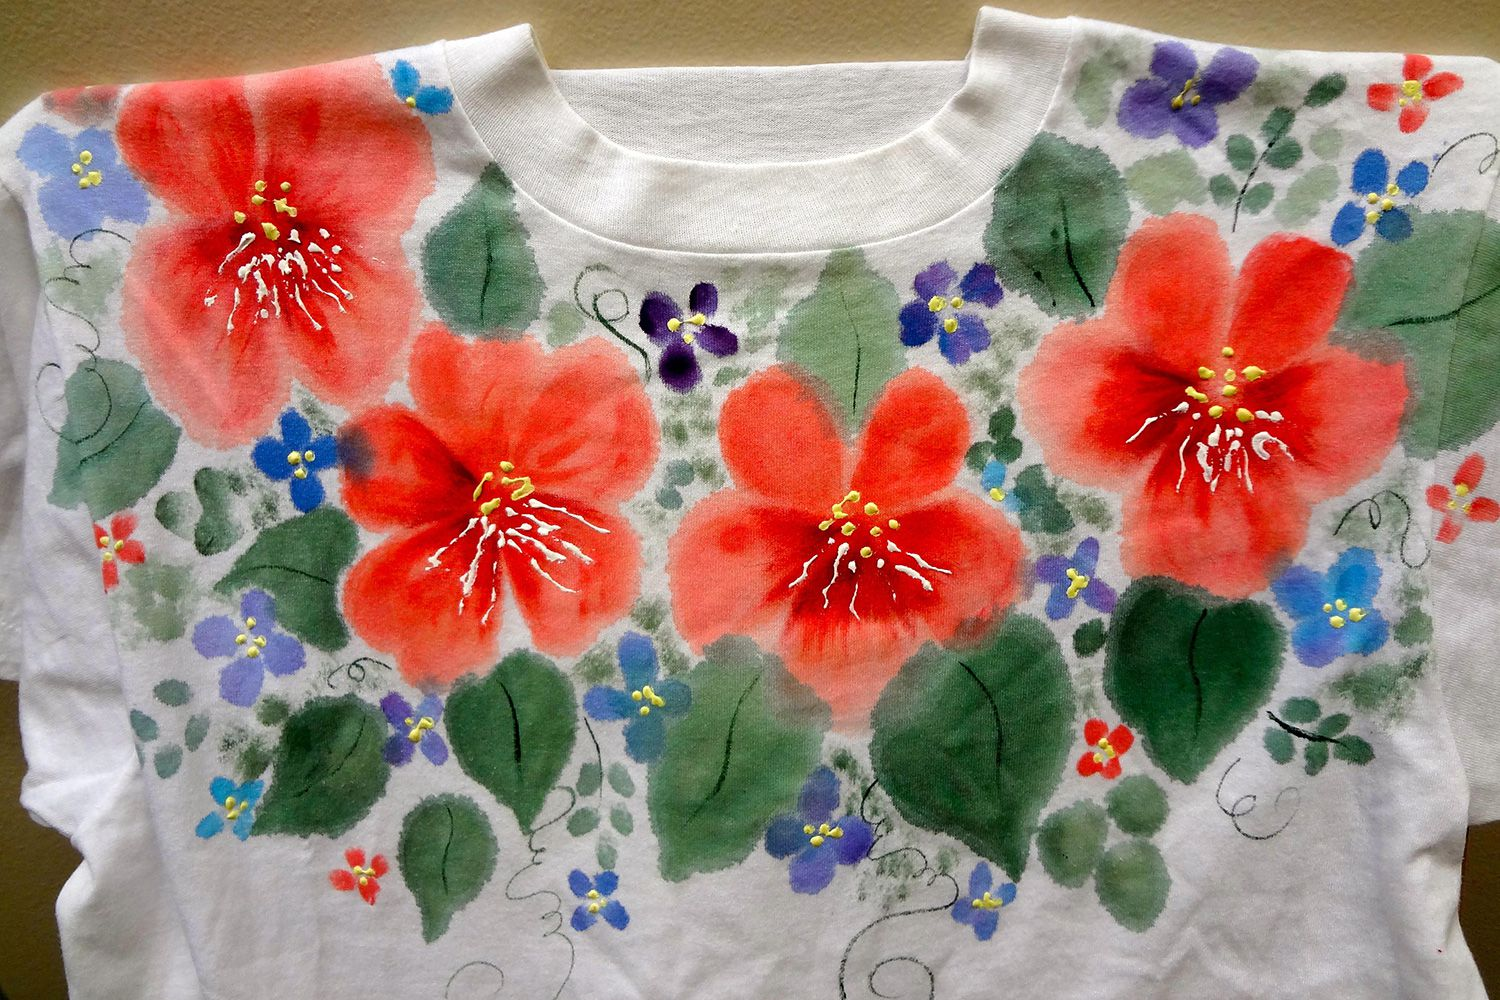 How to Do Fabric Painting